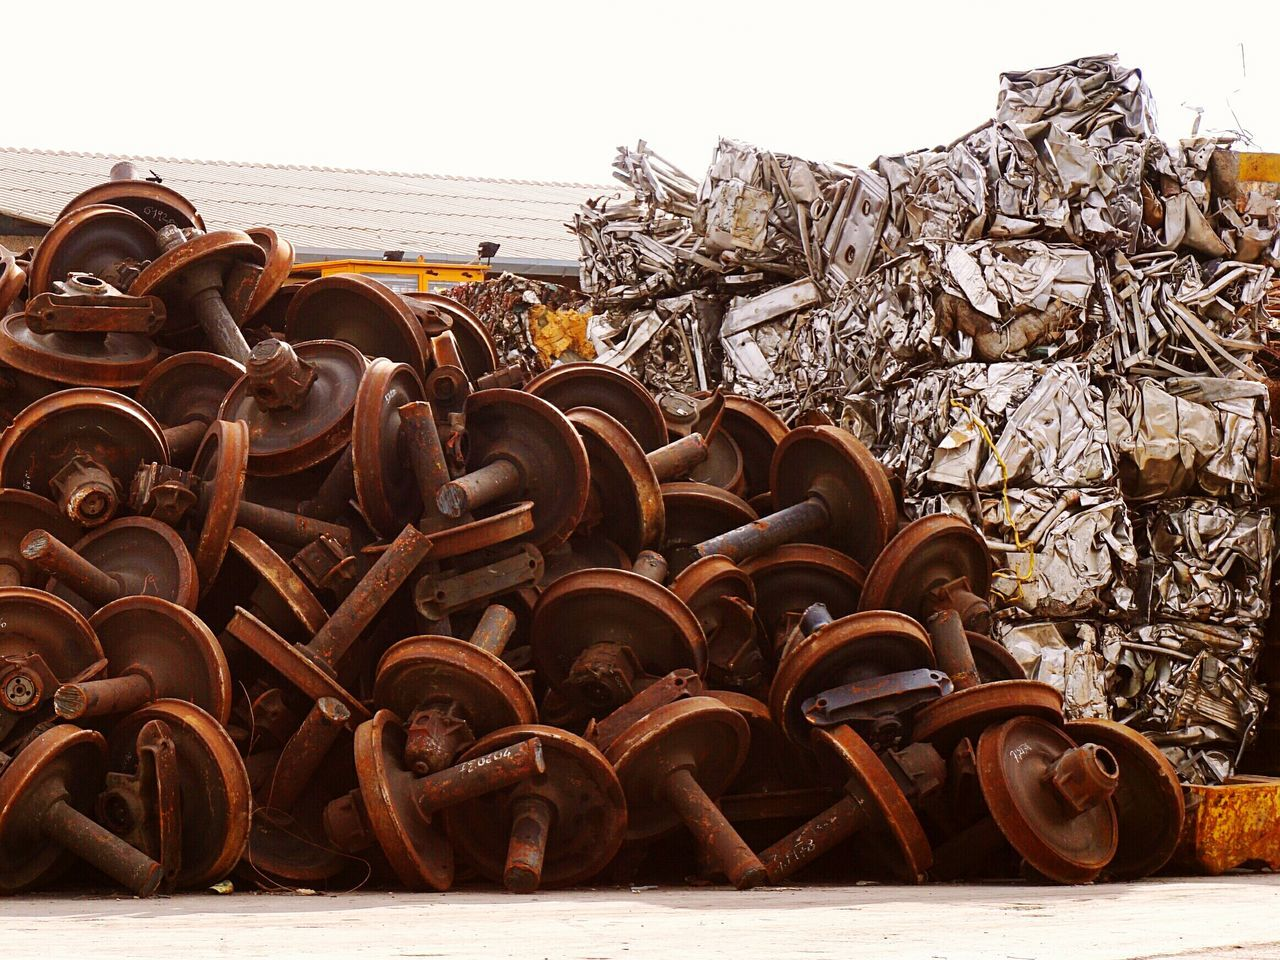 Scrap Iron Recycling Materials Rail Wheels Large Group Of Objects Outdoors Day Civitavecchia Italy 🇮🇹 EyeEmNewHere